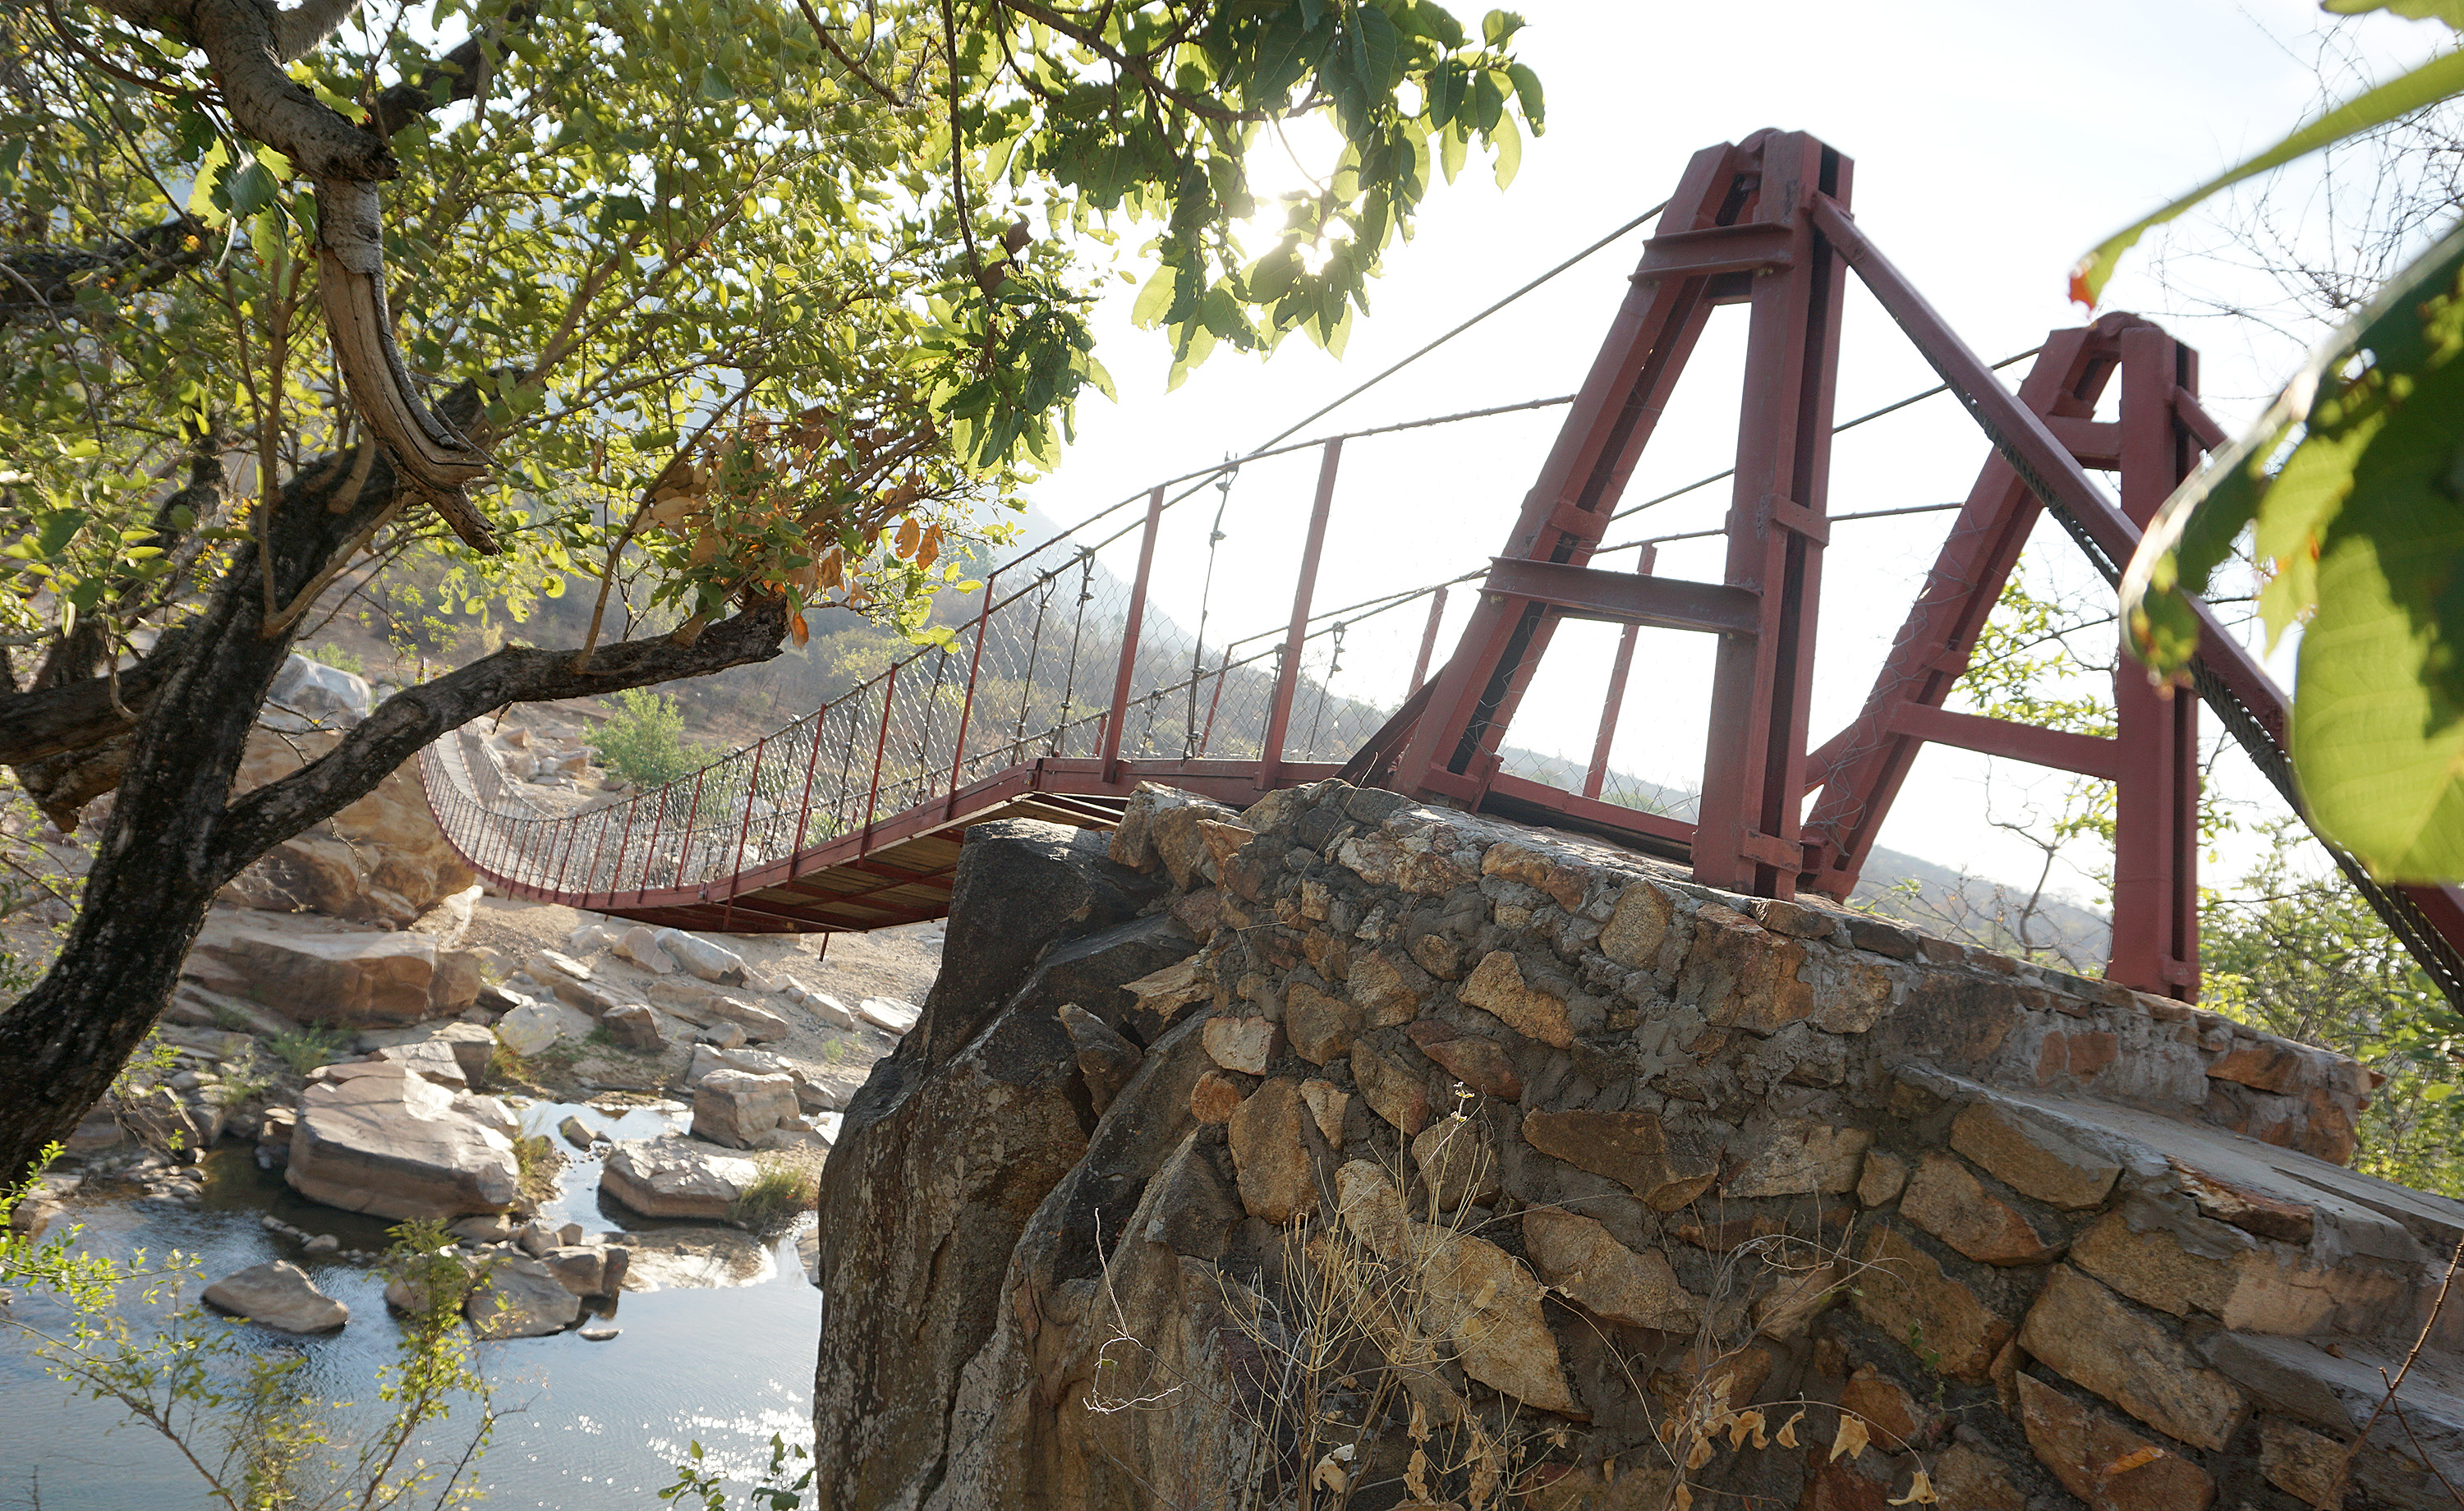 A 164-foot-long suspension bridge donated by United Methodists from Norway spans the Nyan'ombe River in the Shapure community of Nyanga, Zimbabwe. Photo by Kudzai Chingwe, UMNS.